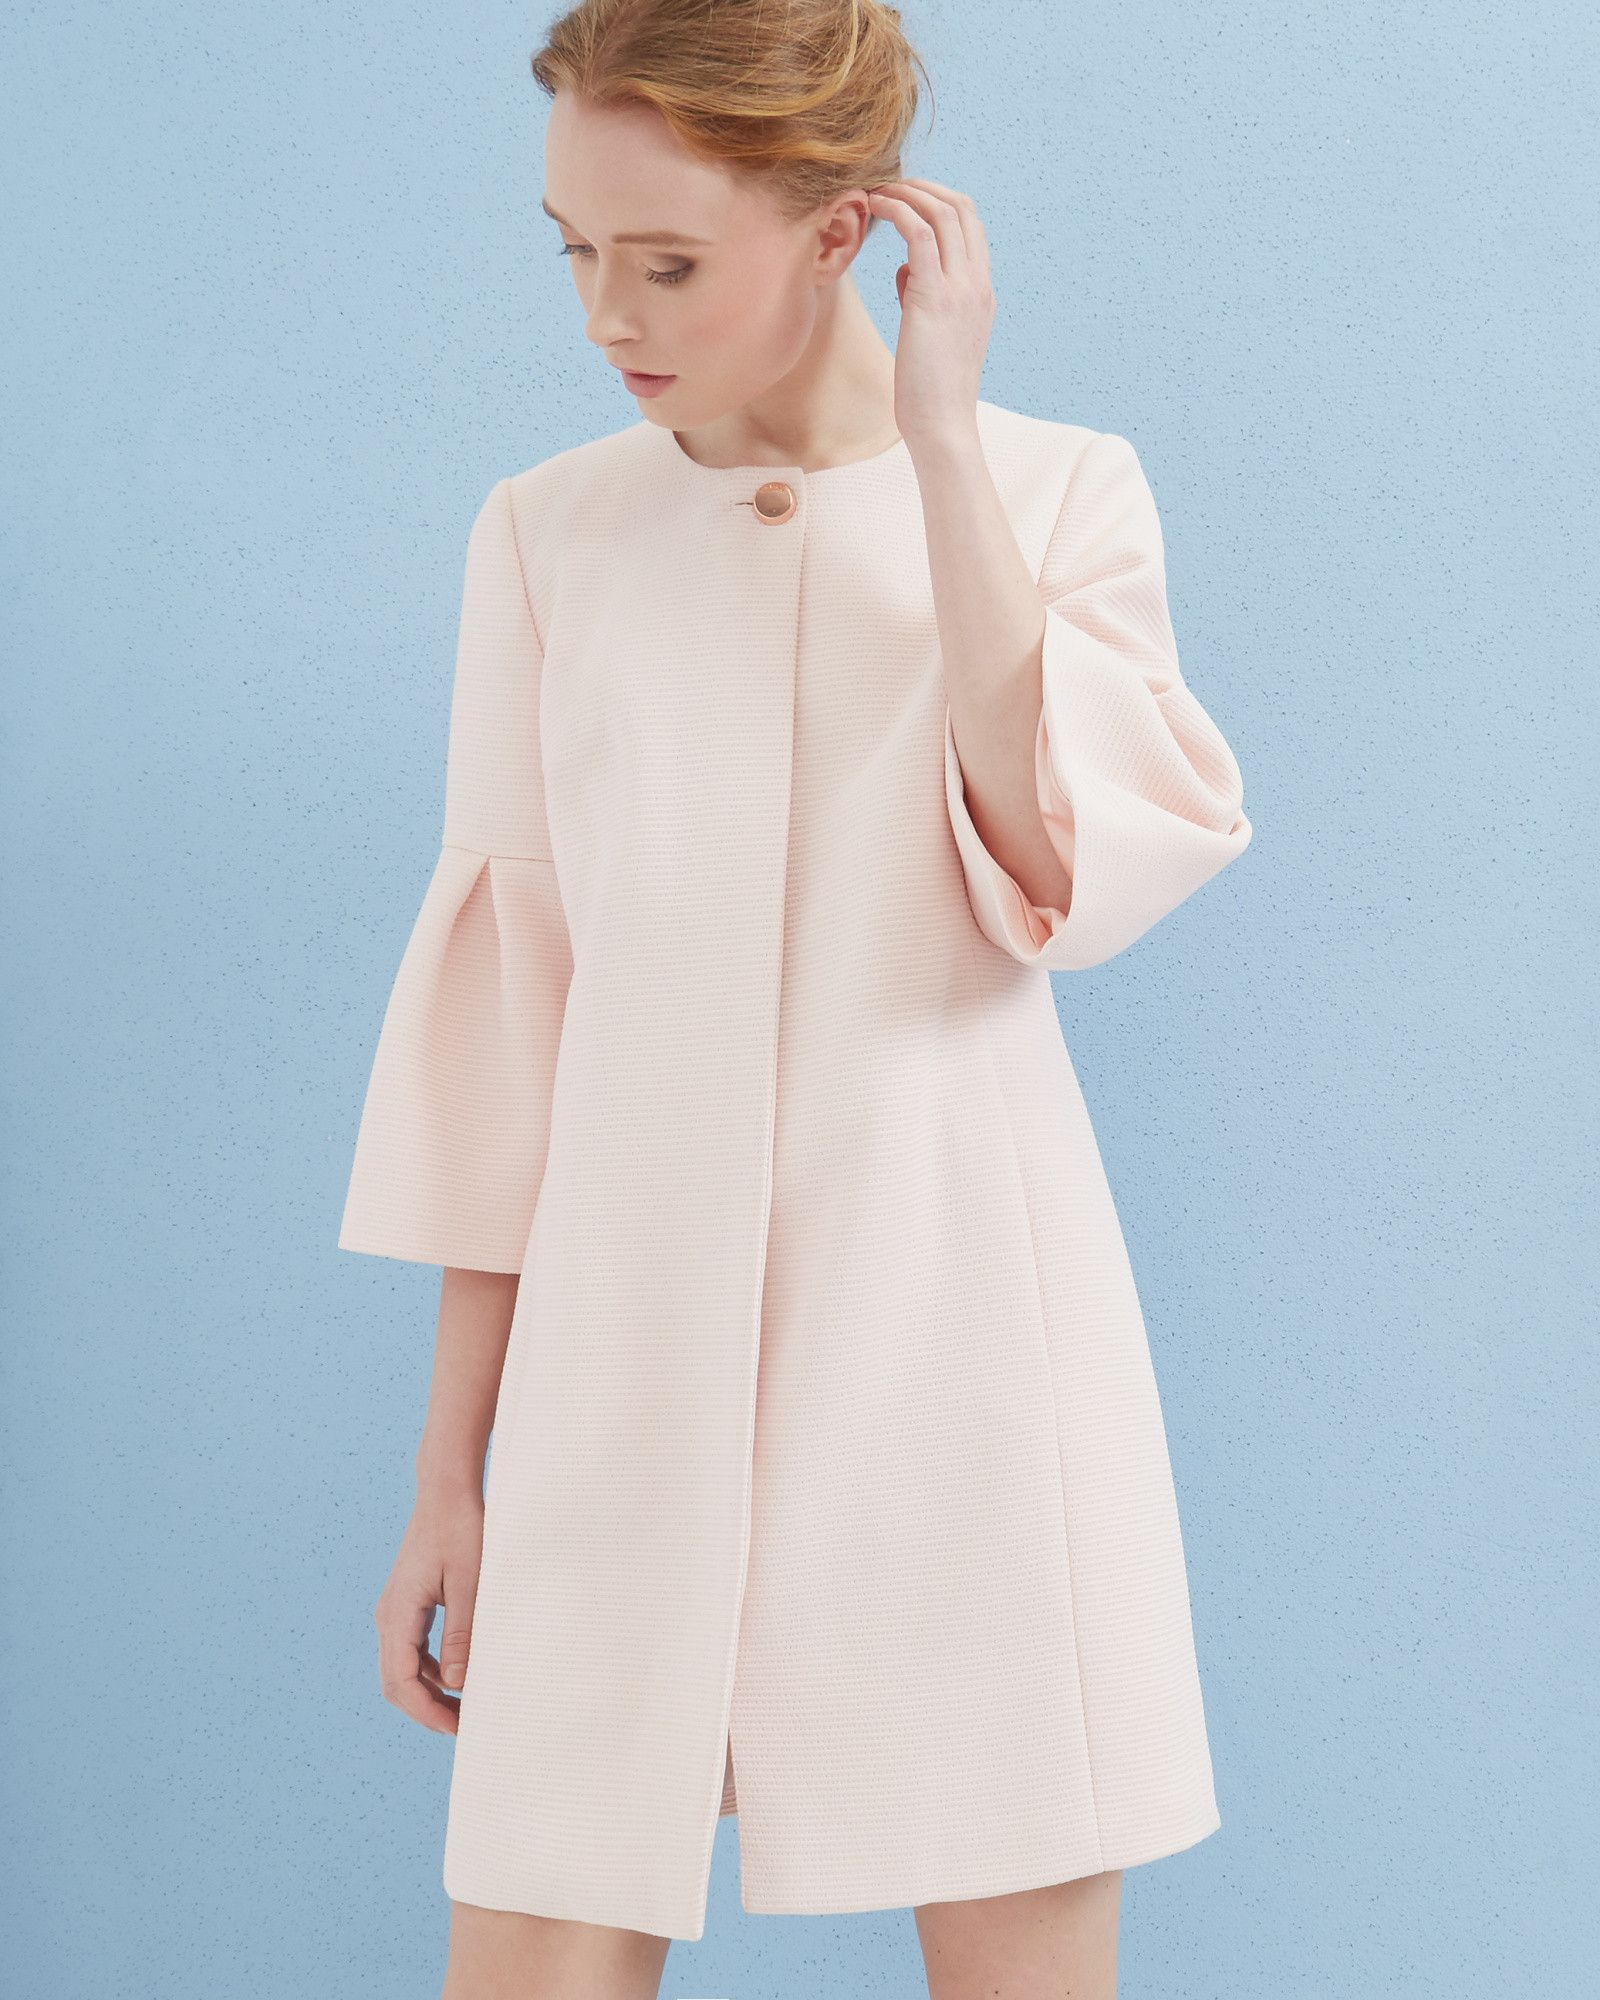 6d844d962 Bell sleeved coat - Baby Pink